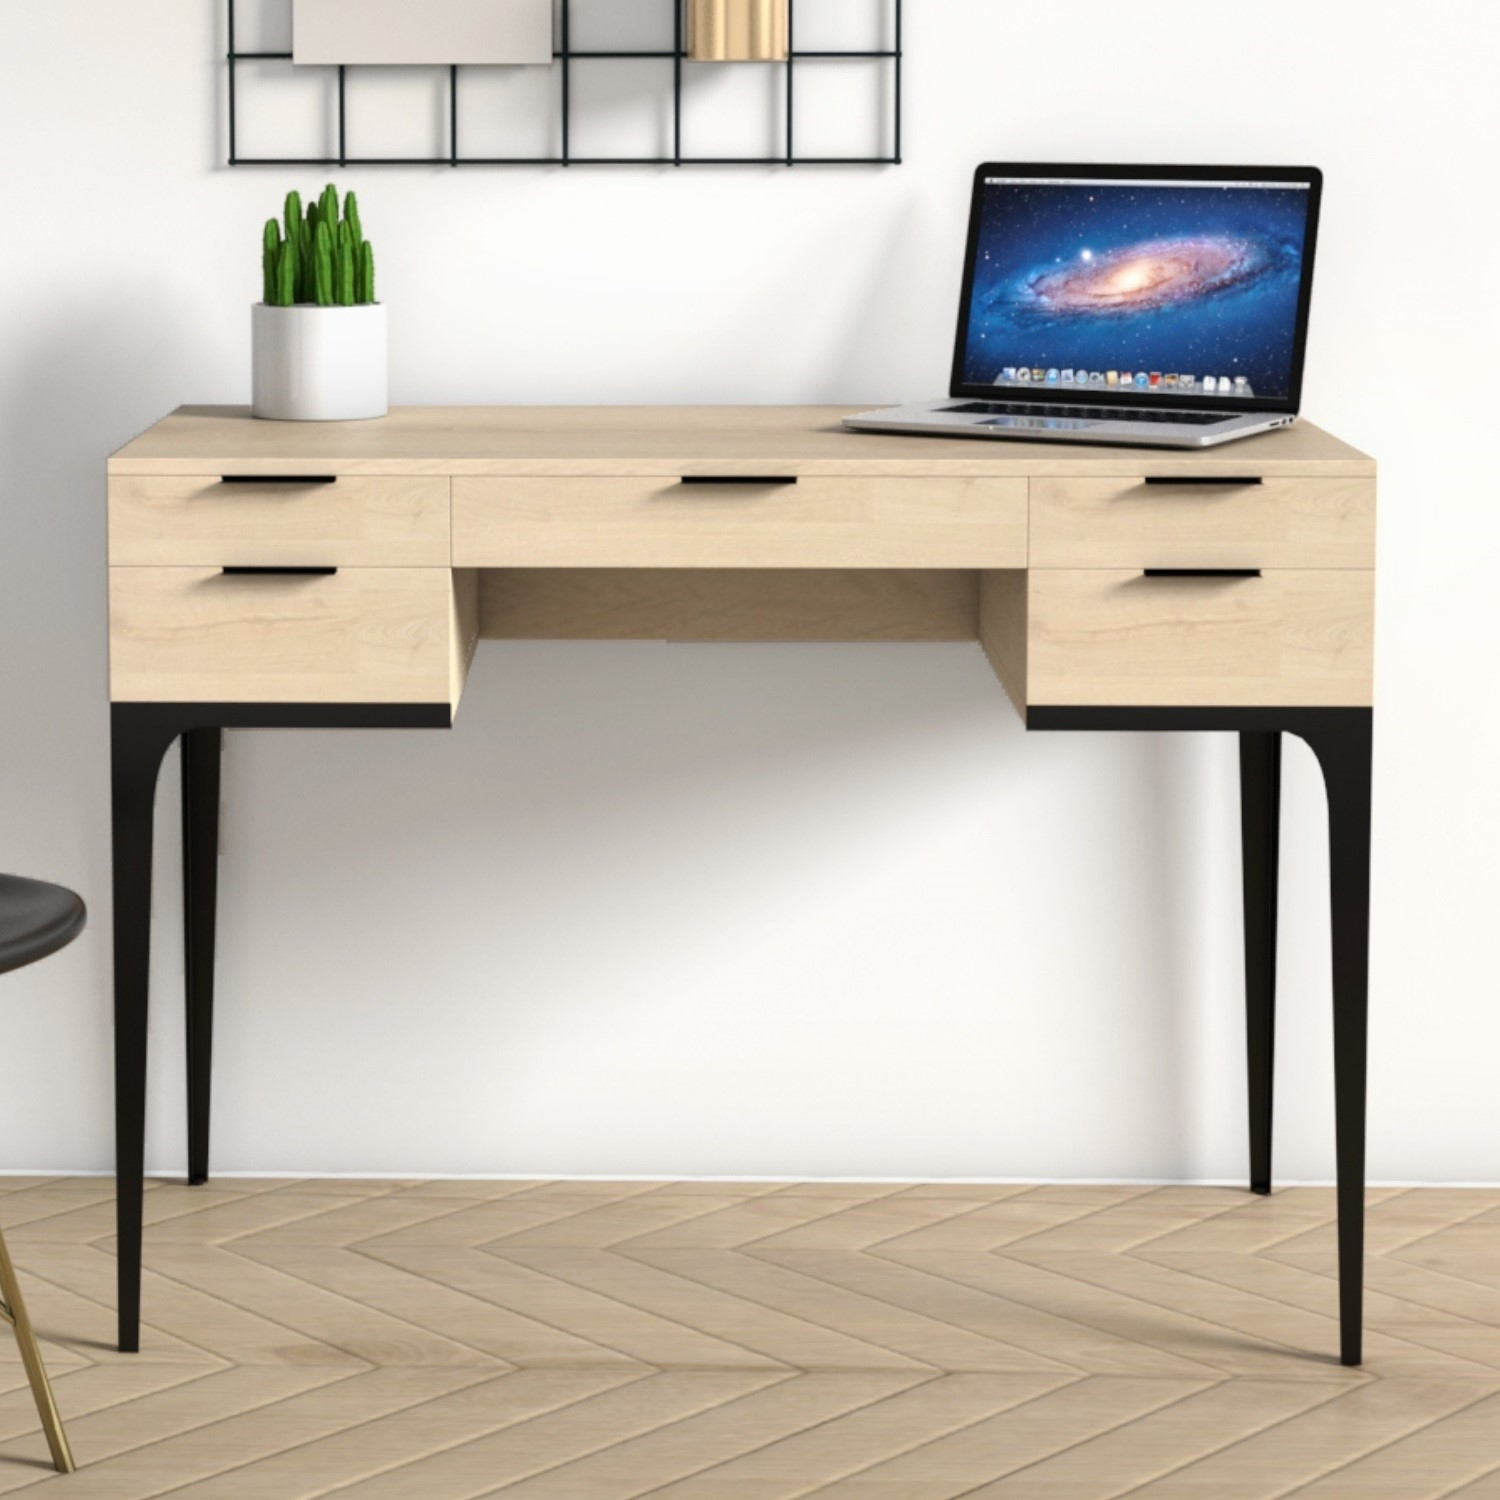 Modern Mango Wood Desk with 5 Drawers and Industrial Legs  Kai